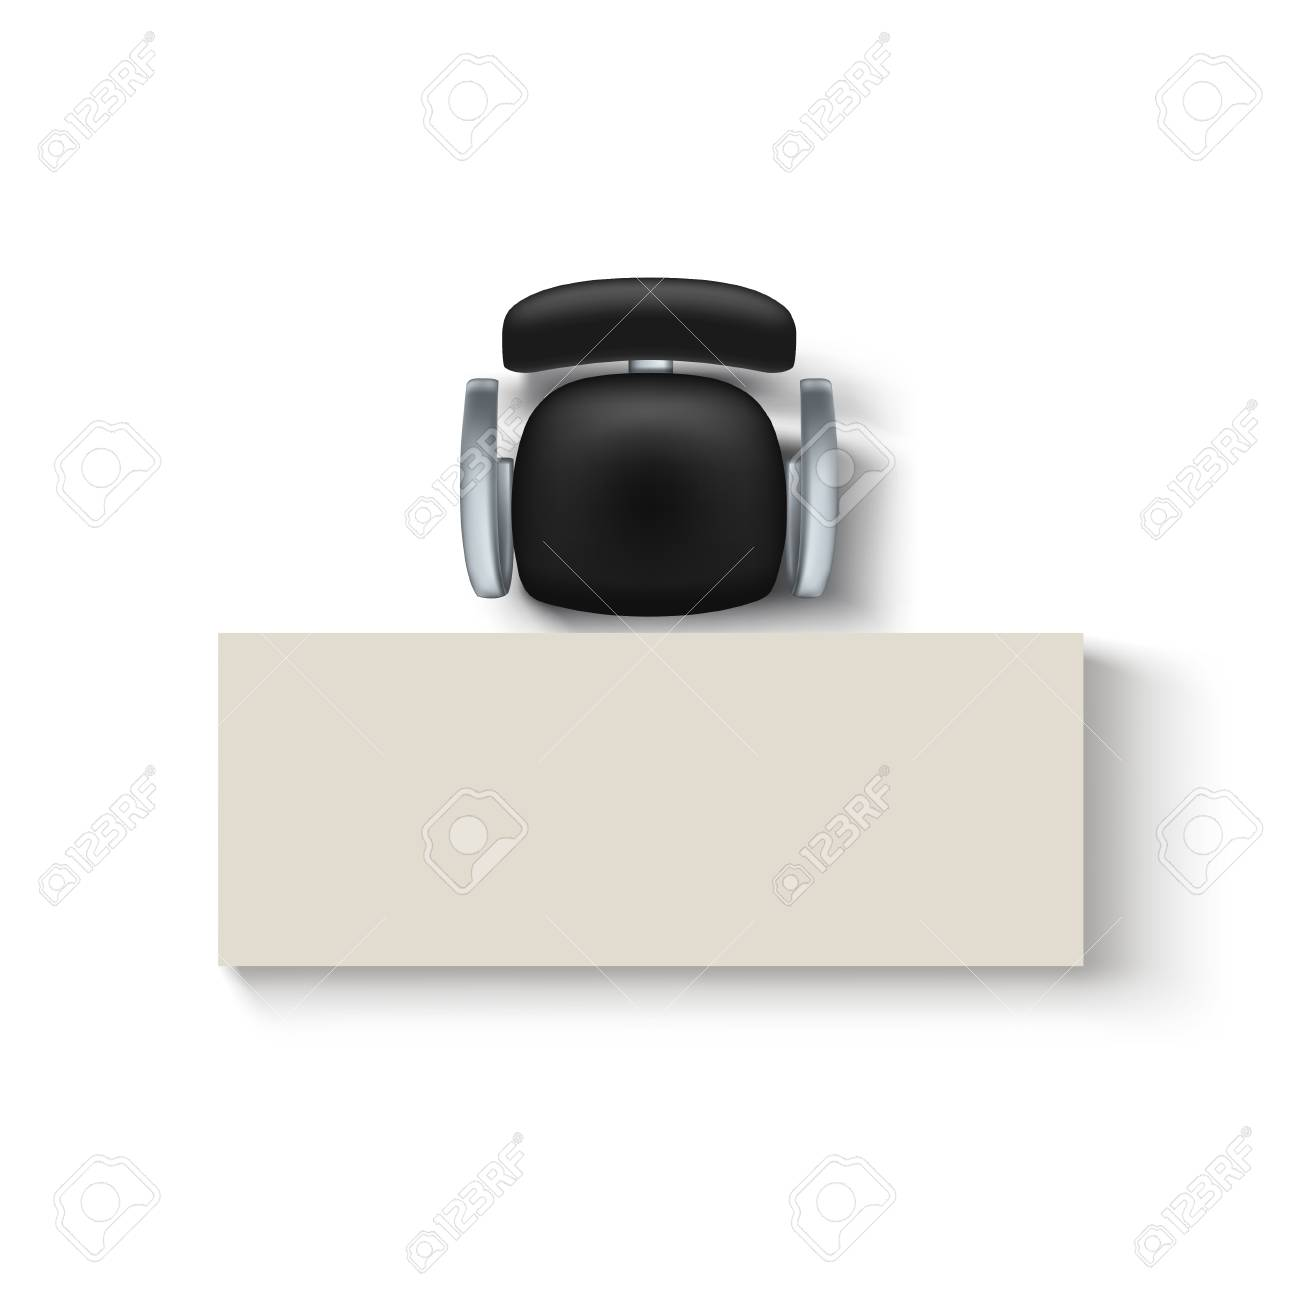 illustration of top view black color chair and desk wit shadow on white background - 99085868